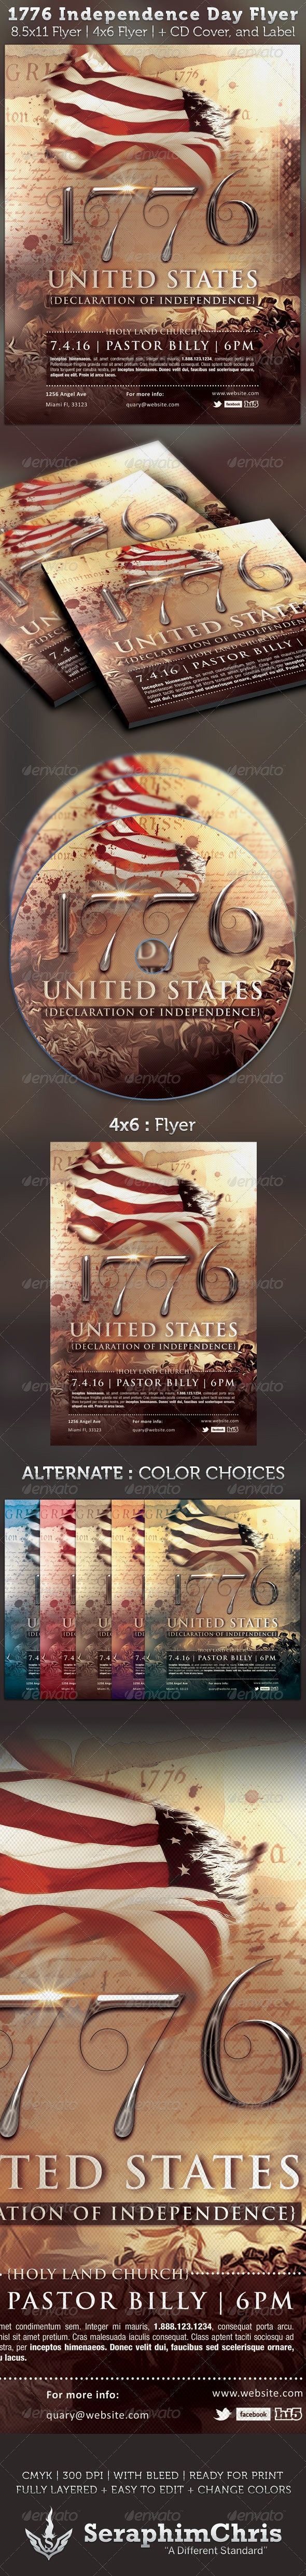 1776 Independence Day Flyer & CD Artwork Template - Church Flyers